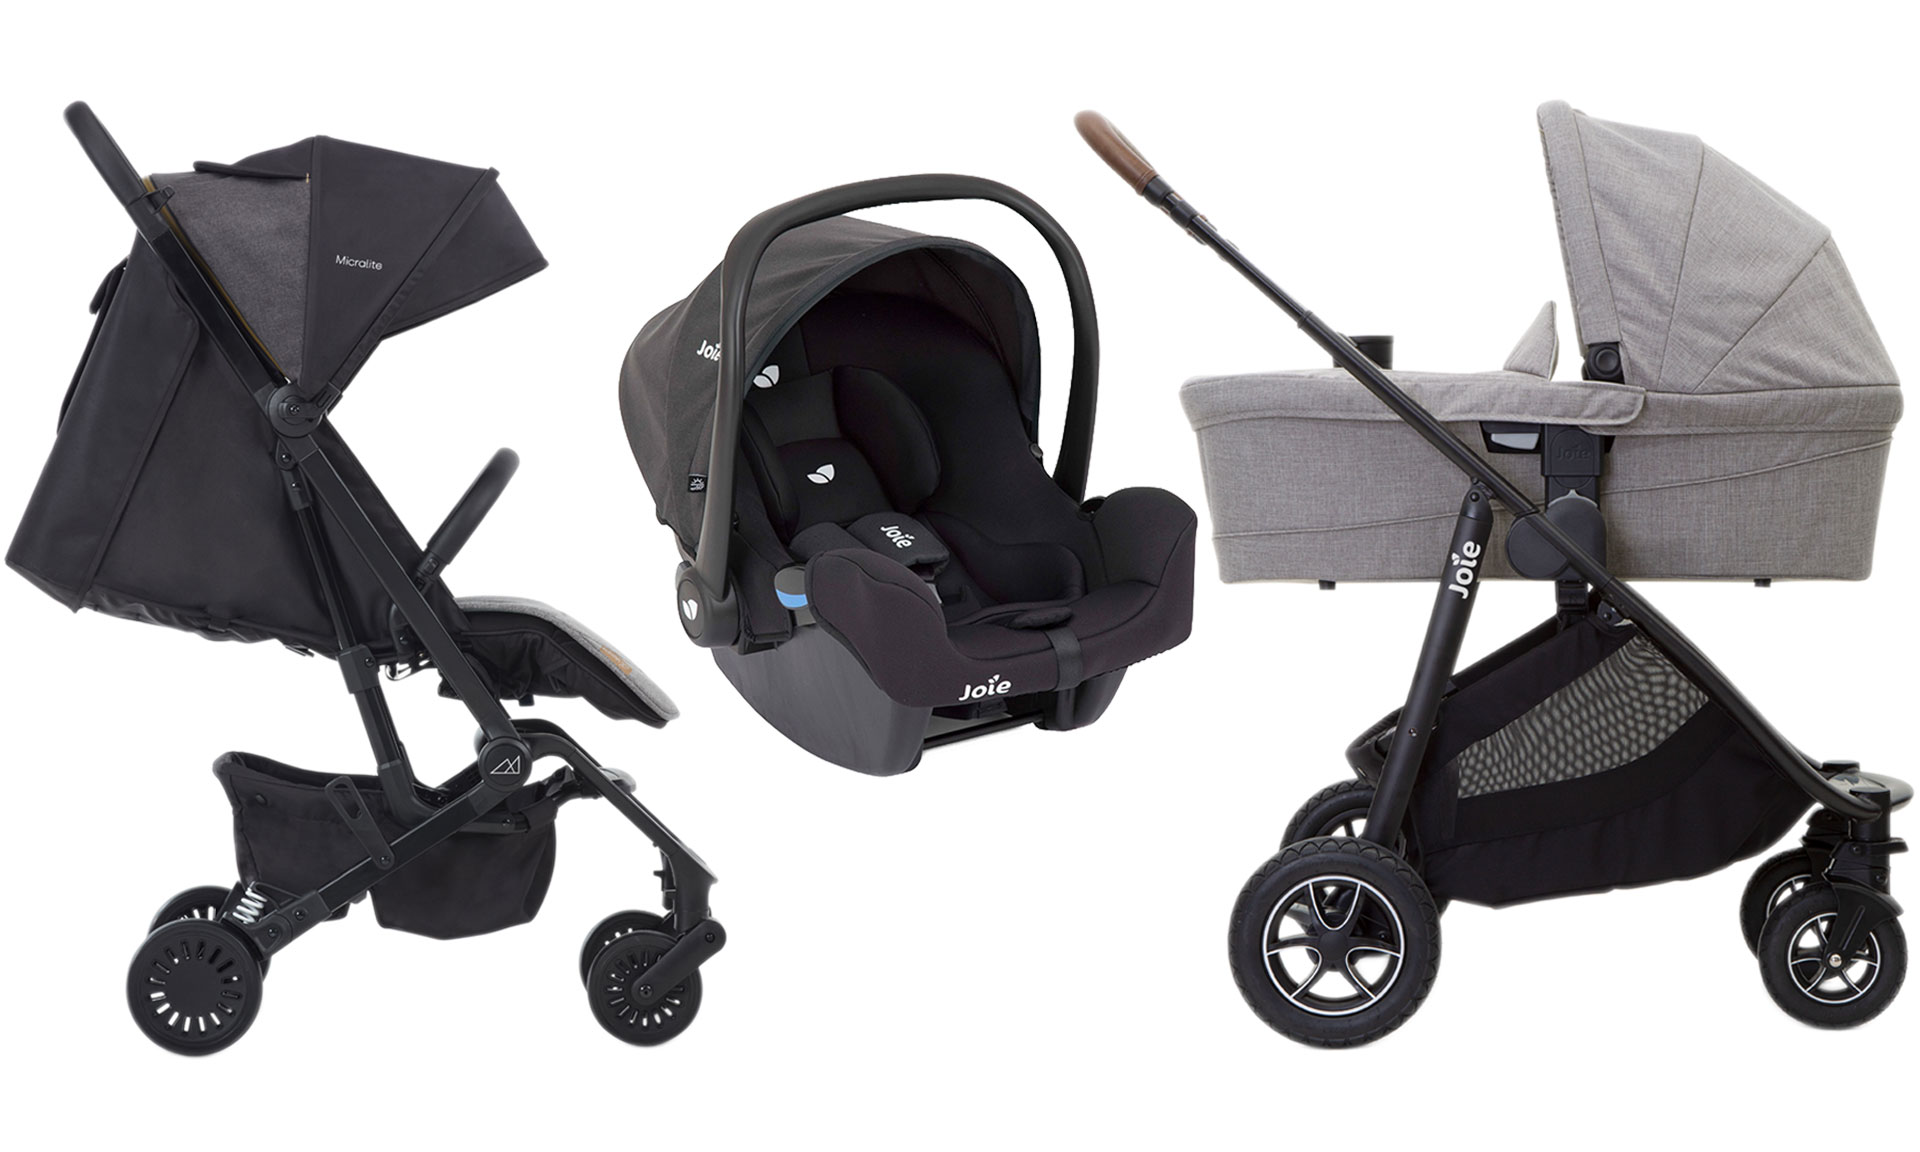 Joie Baby Head Office Cosatto Babystyle And Joie Car Seat And Pushchairs Coming